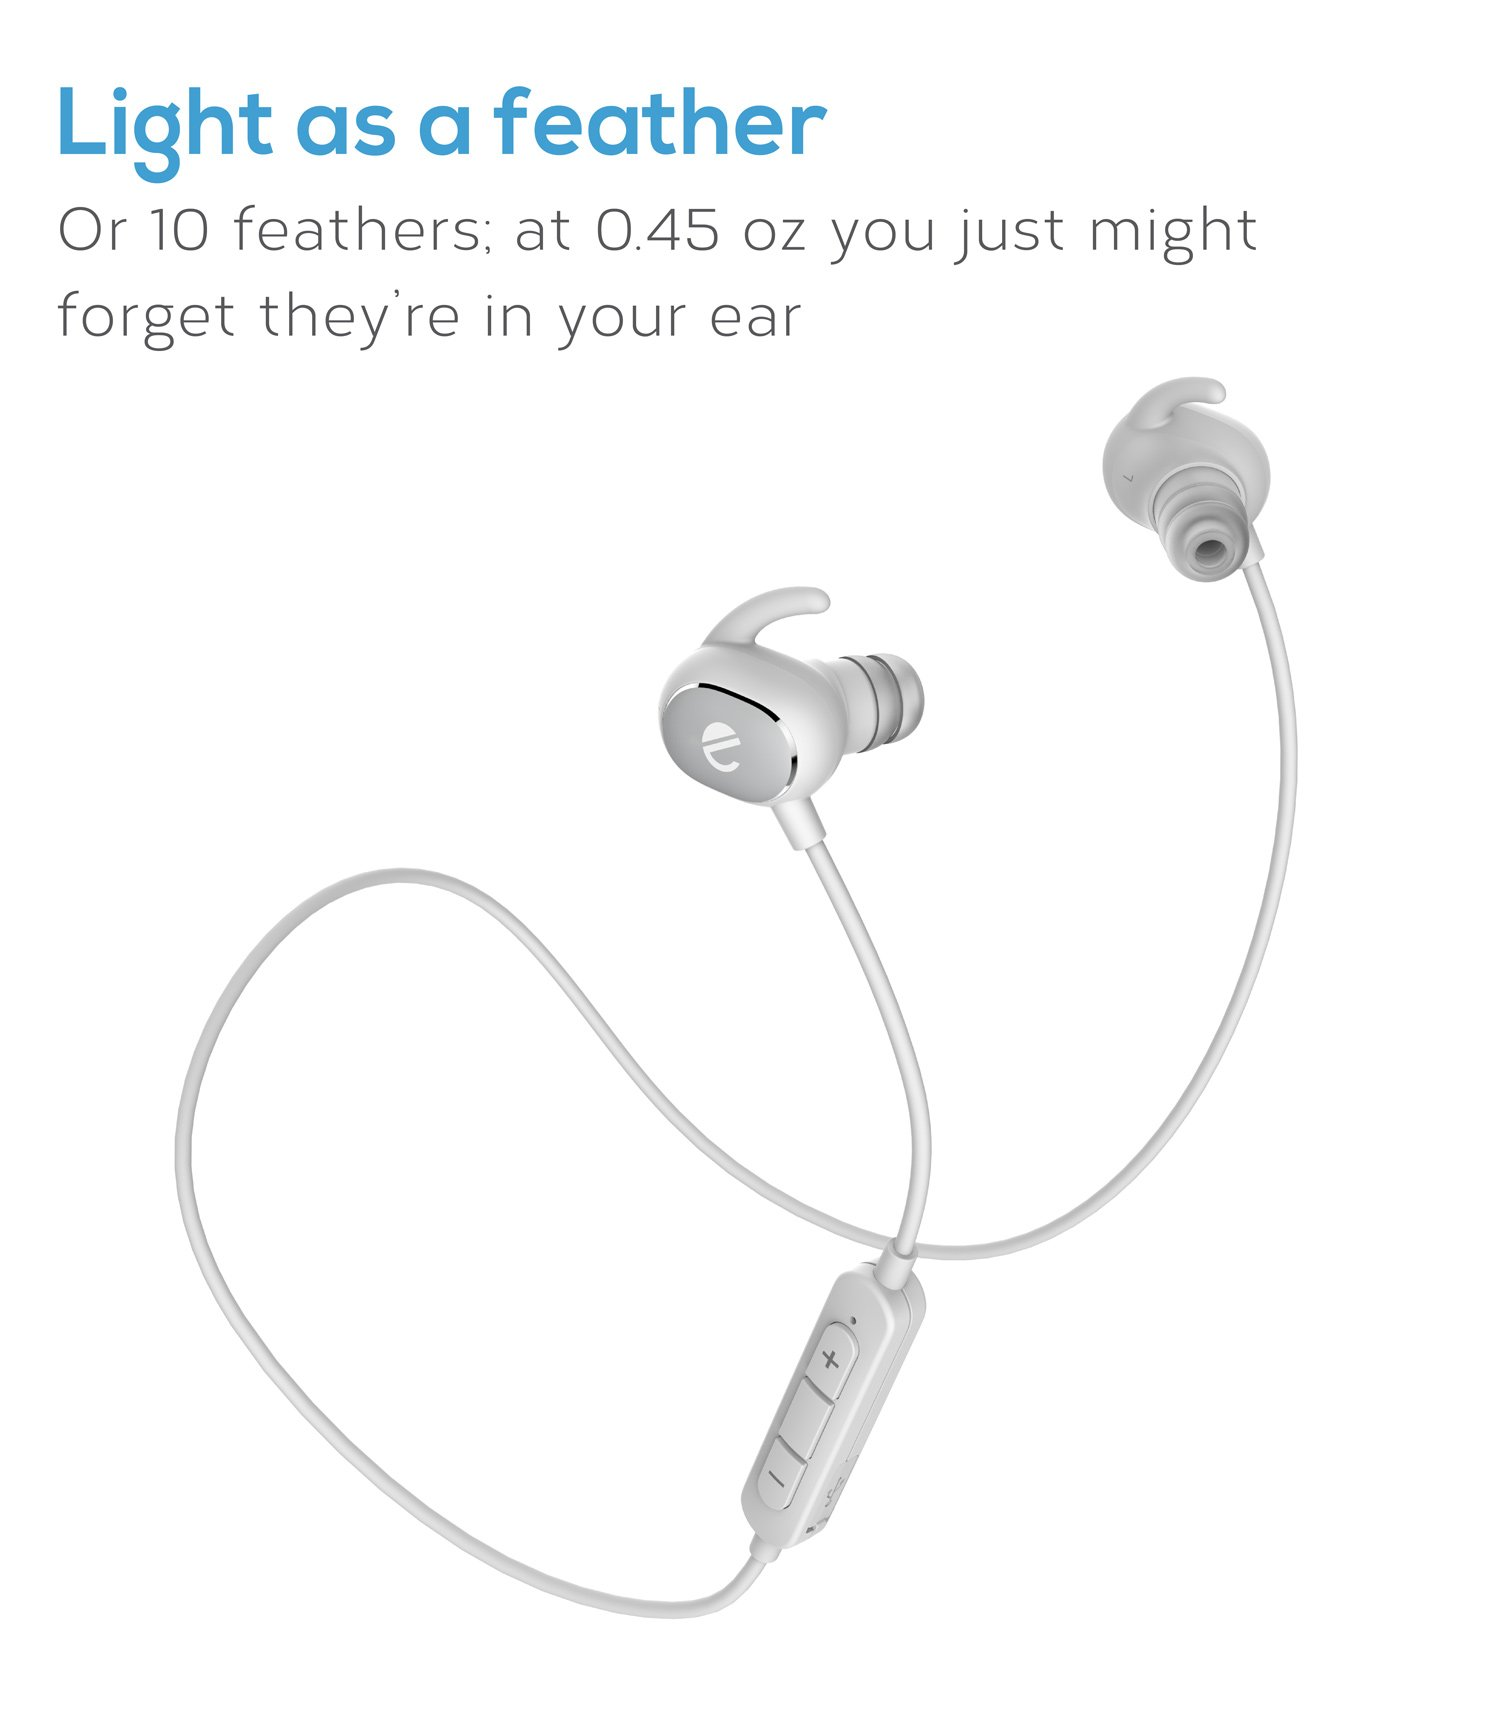 eeco Bluetooth Earphones Wireless Sport with Mic Earbuds Headphones Bluetooth 4.1 Lightweight Sport Hi-Fi Stereo in Ear APTX Stereo Sweatproof for Iphone, Tablets, Laptops, and other Smartphones